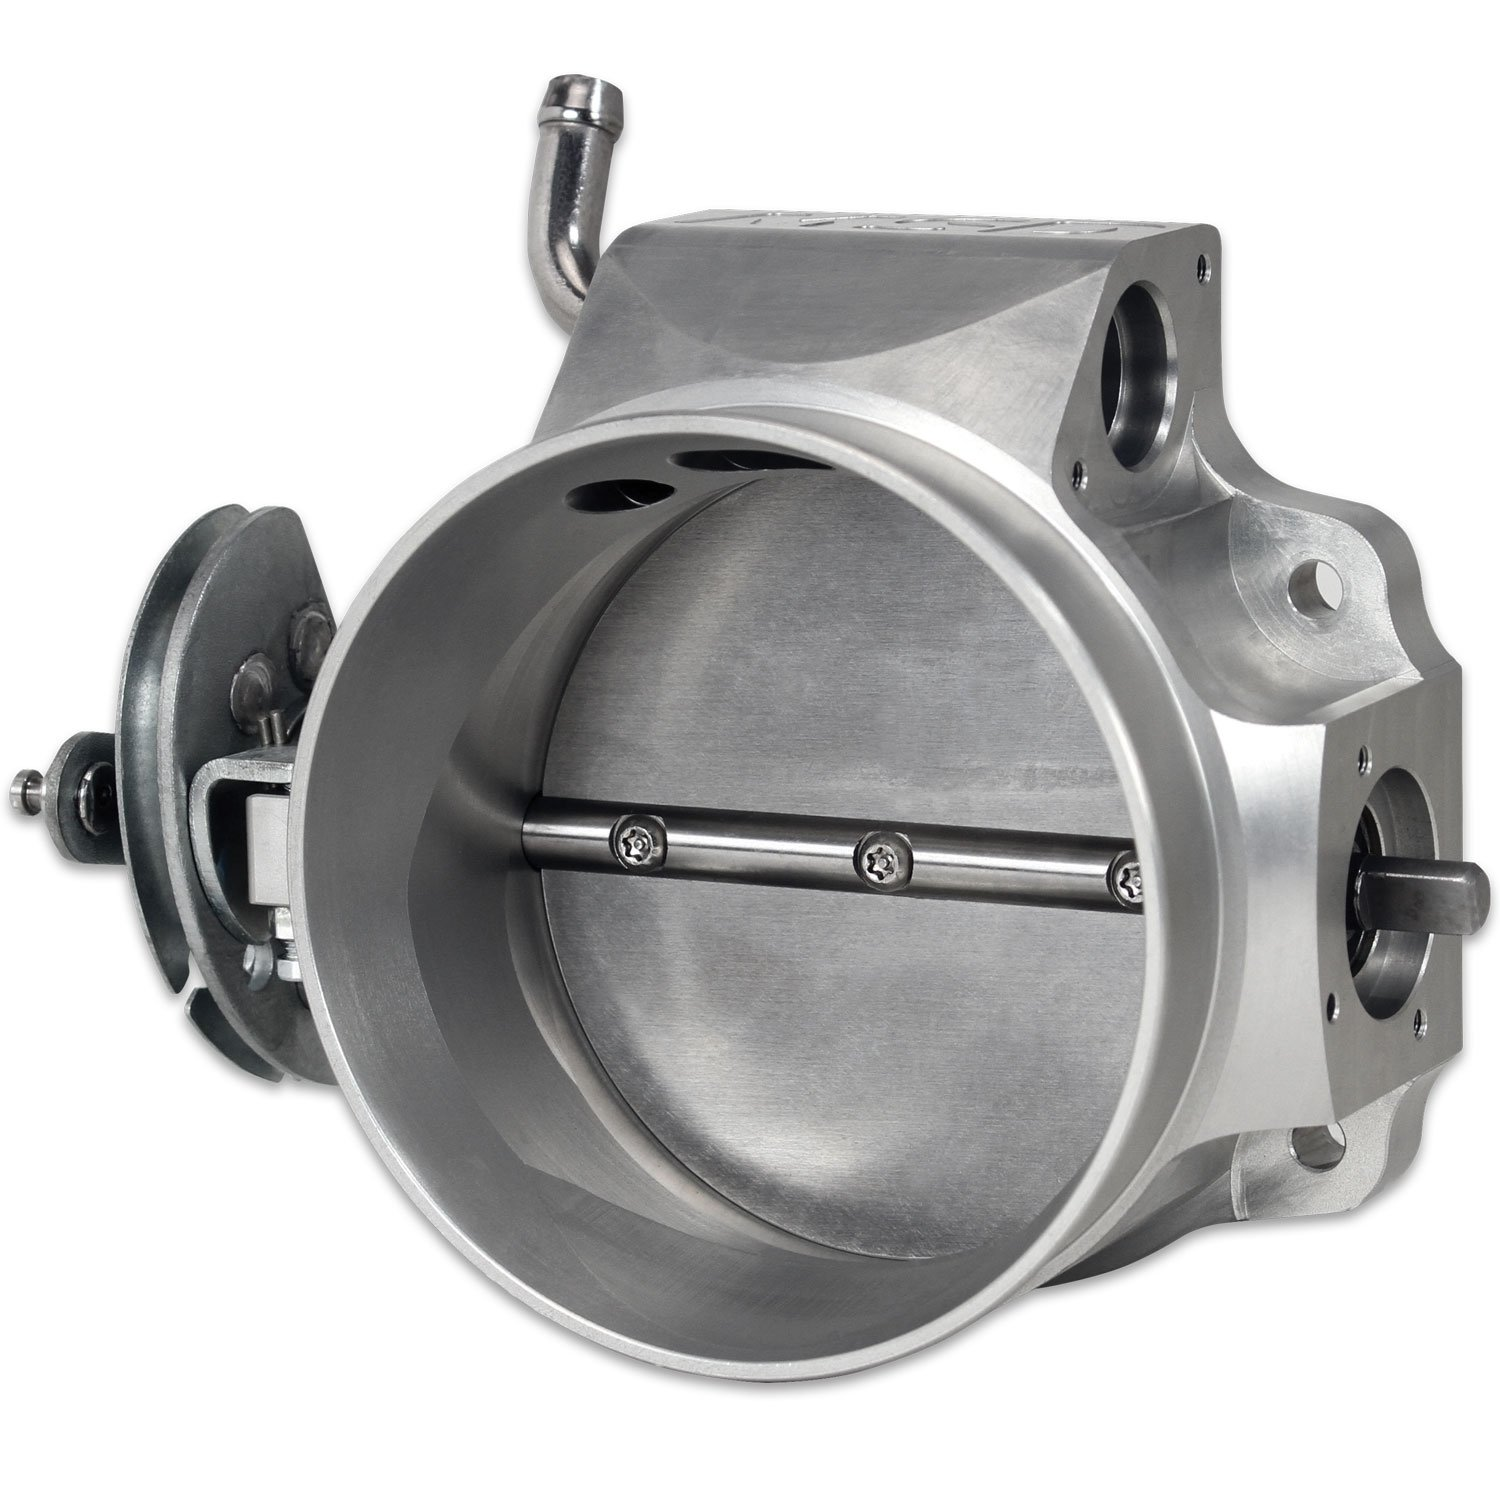 2945 - Atomic LS Throttle Body 103mm, 4 Bolt Image